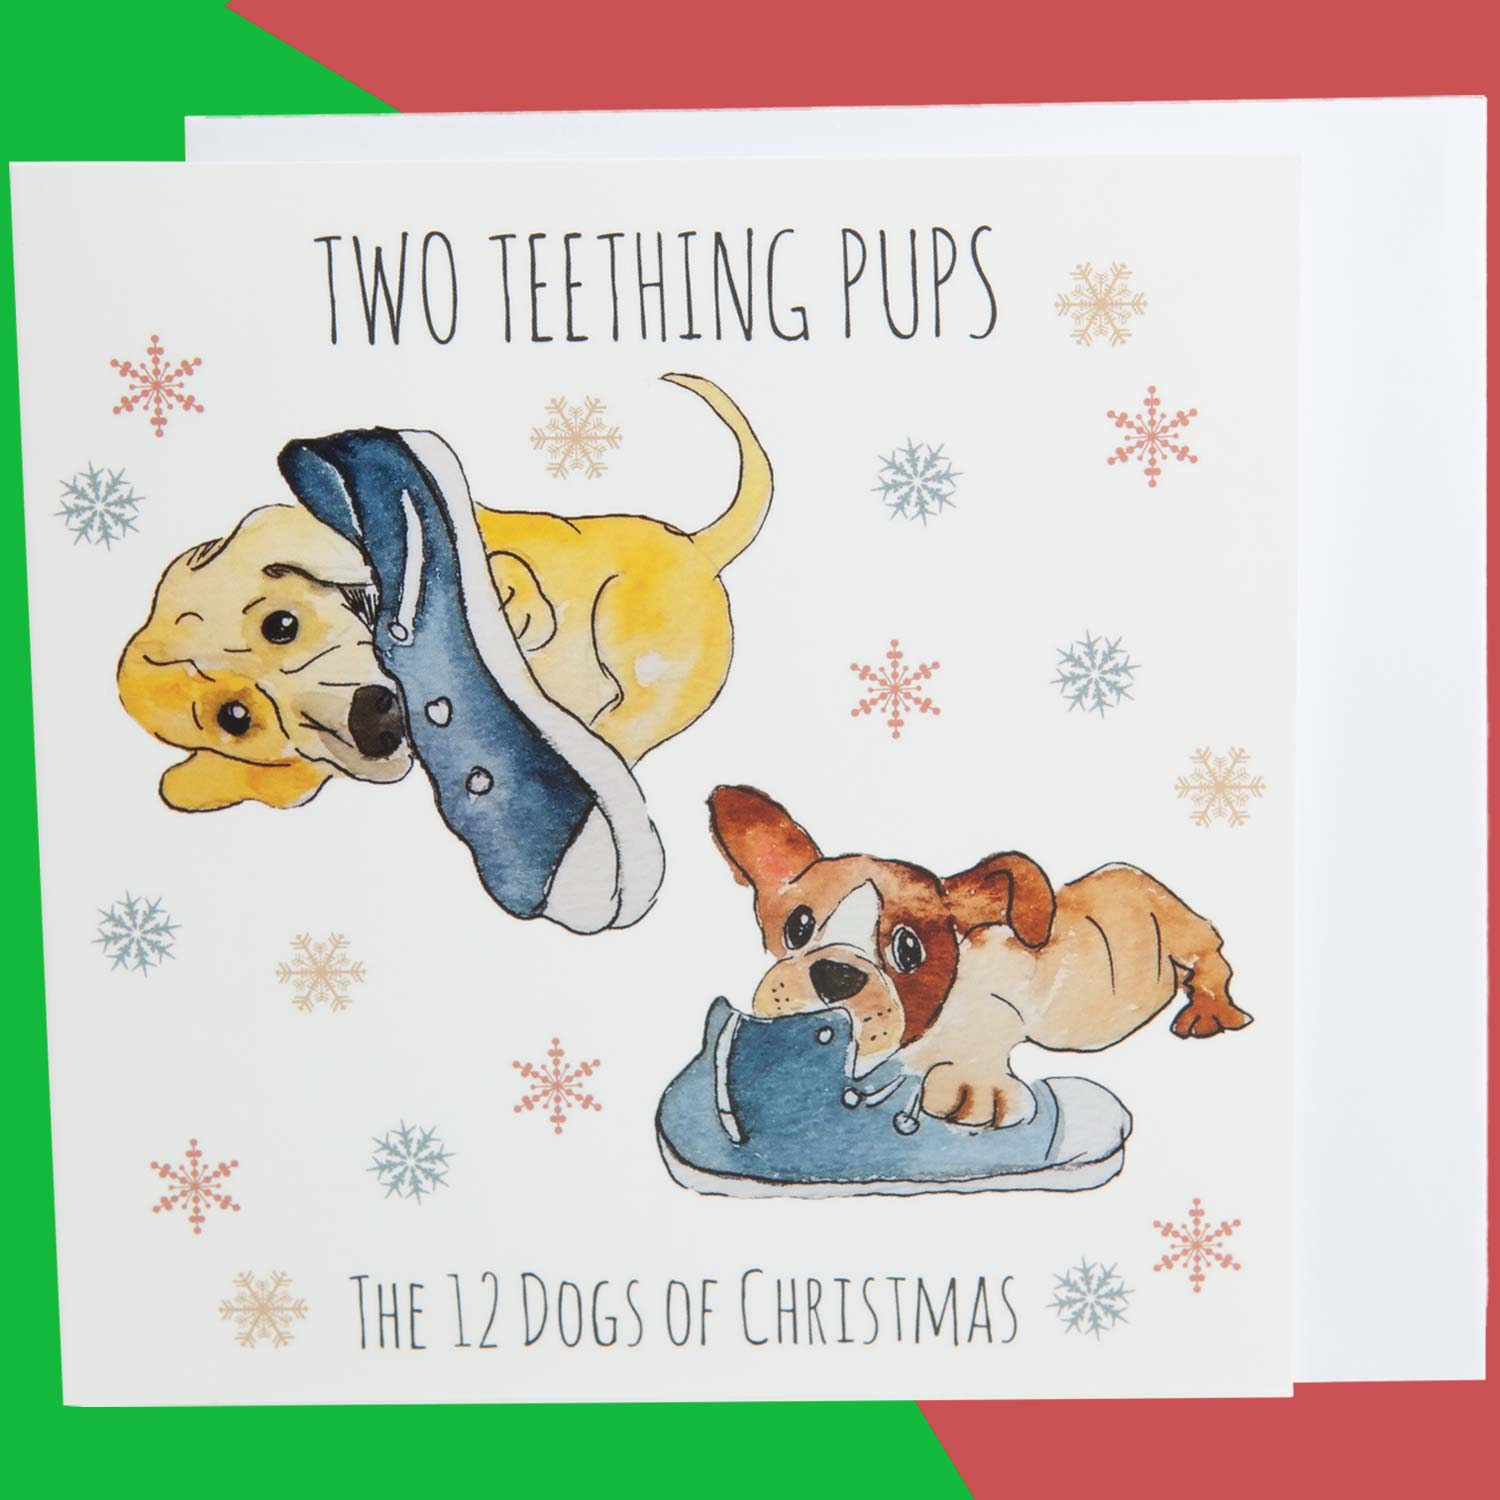 Dog Krazy Gifts - Two Teething Puppies - Part of the 12 Dogs of Christmas card collection available from DogKrazyGifts.co.uk